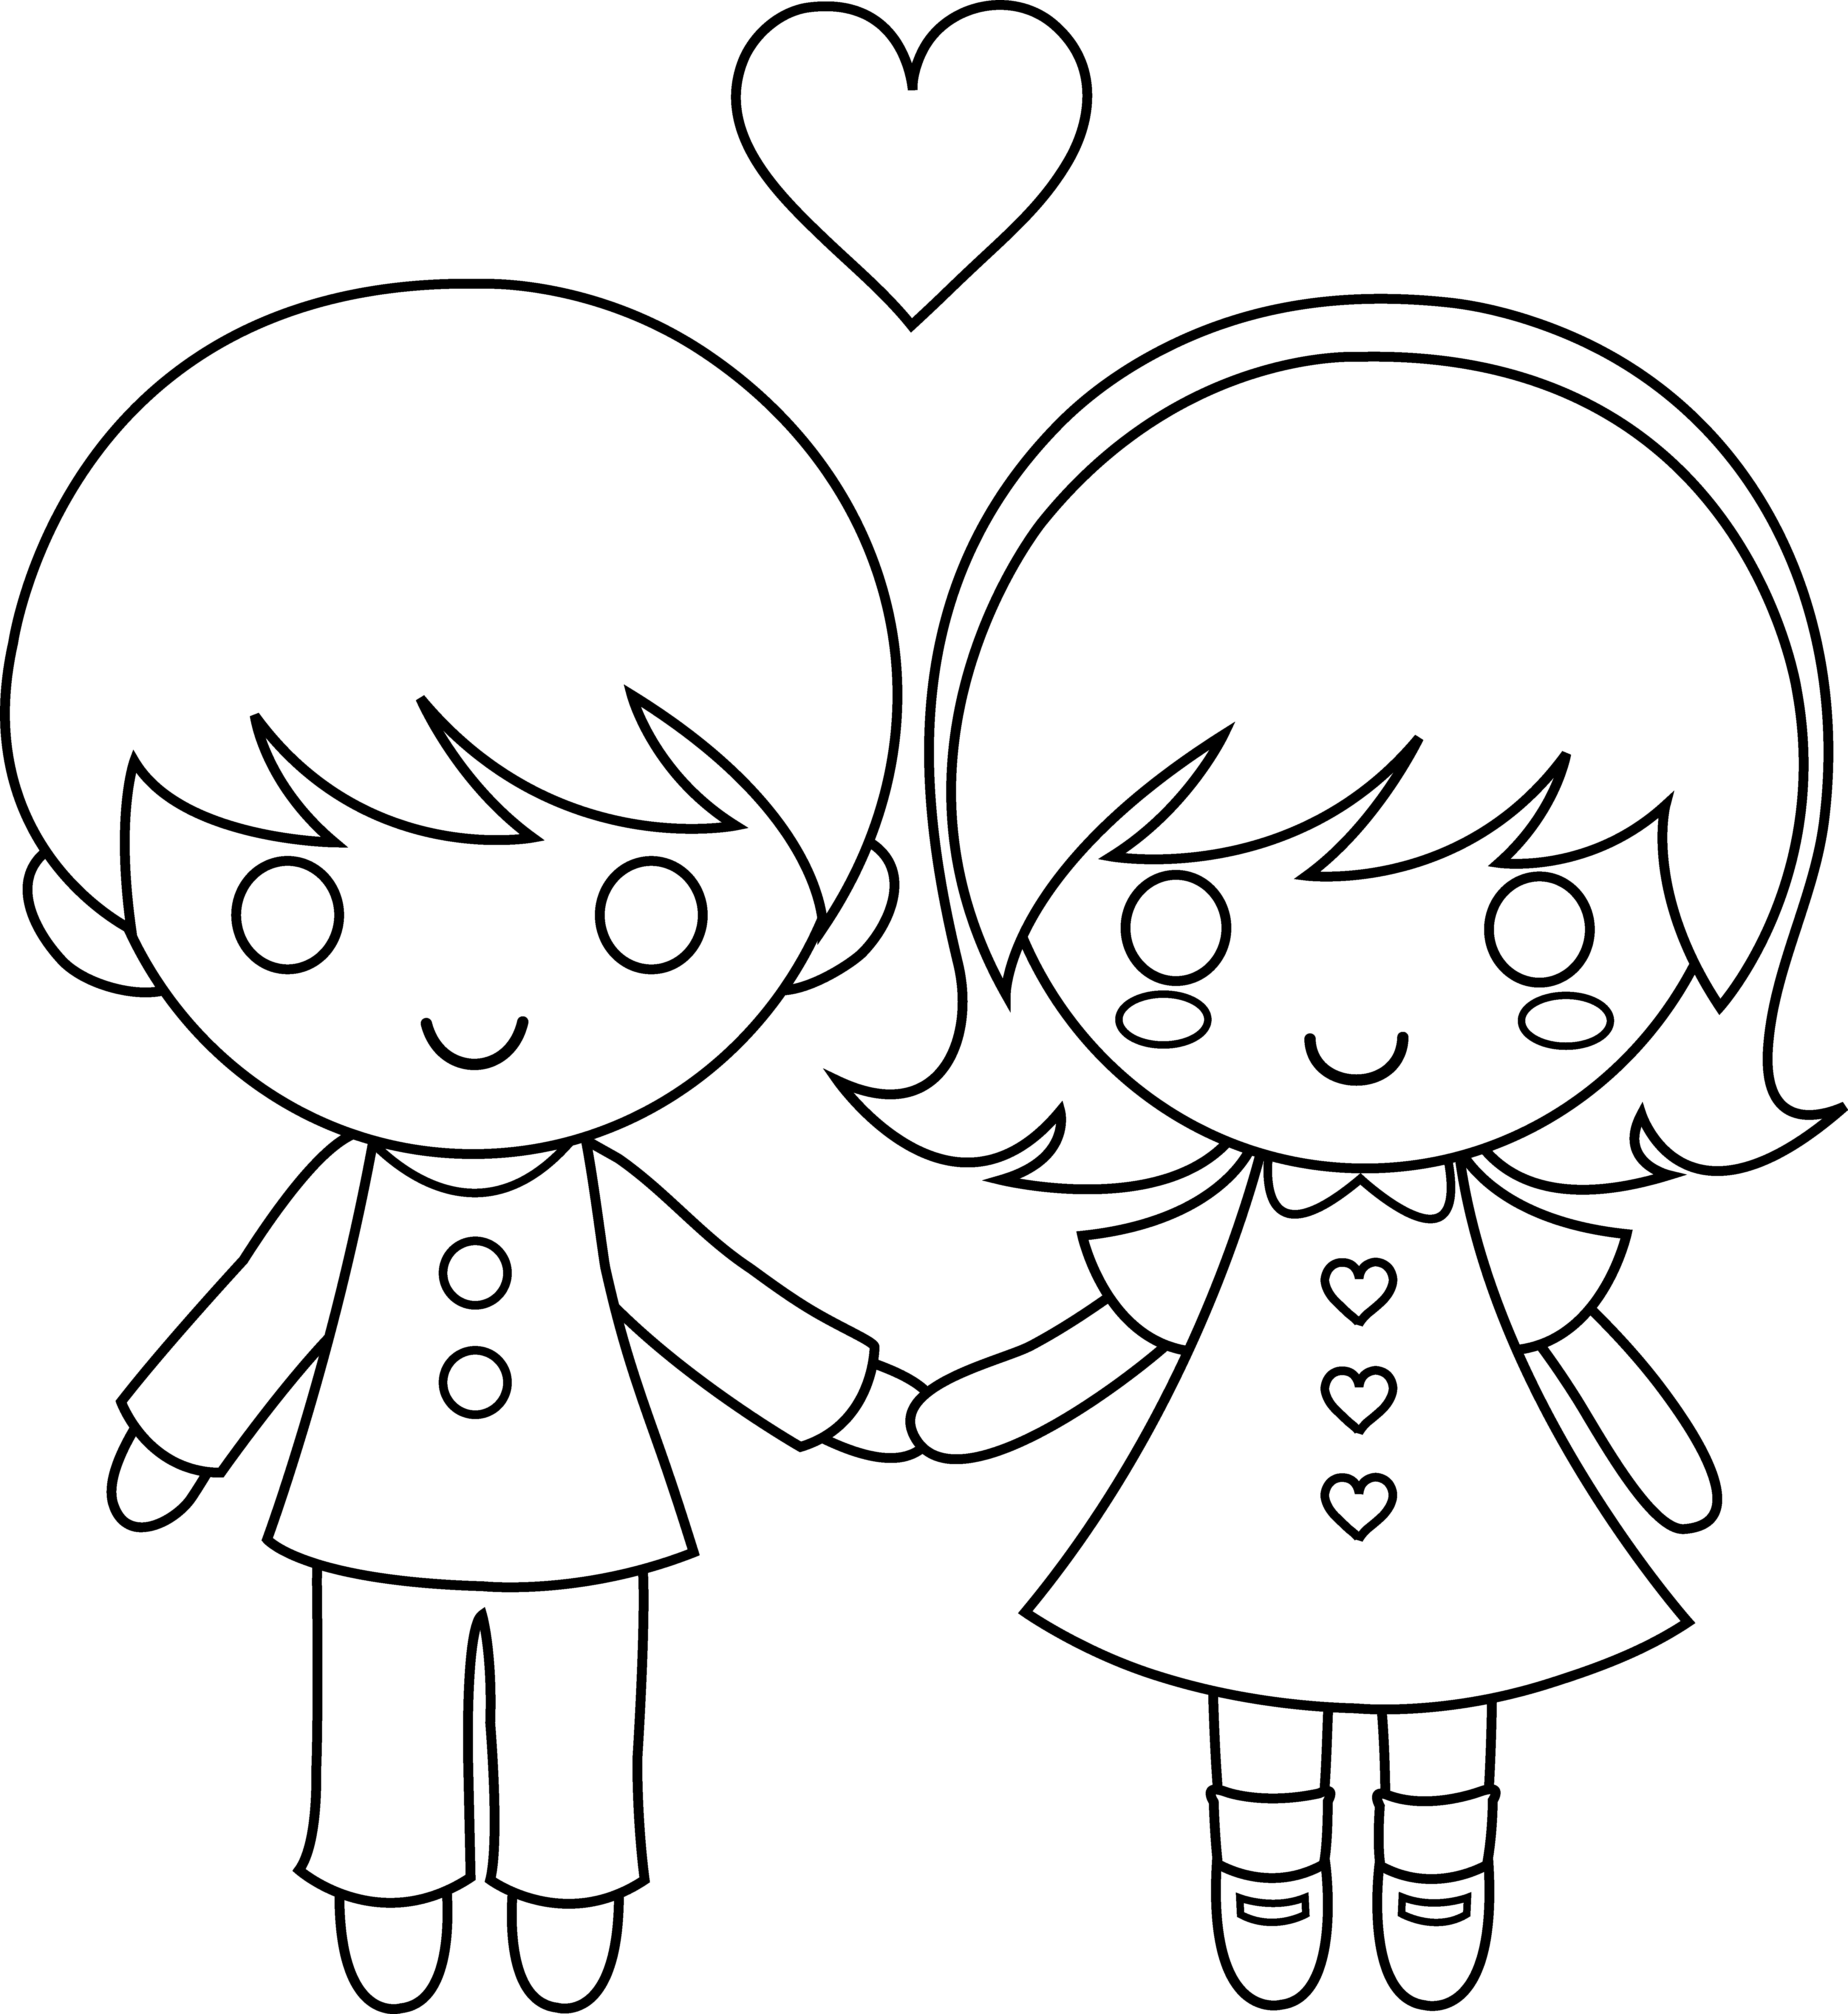 child-coloring-page-0007-q1